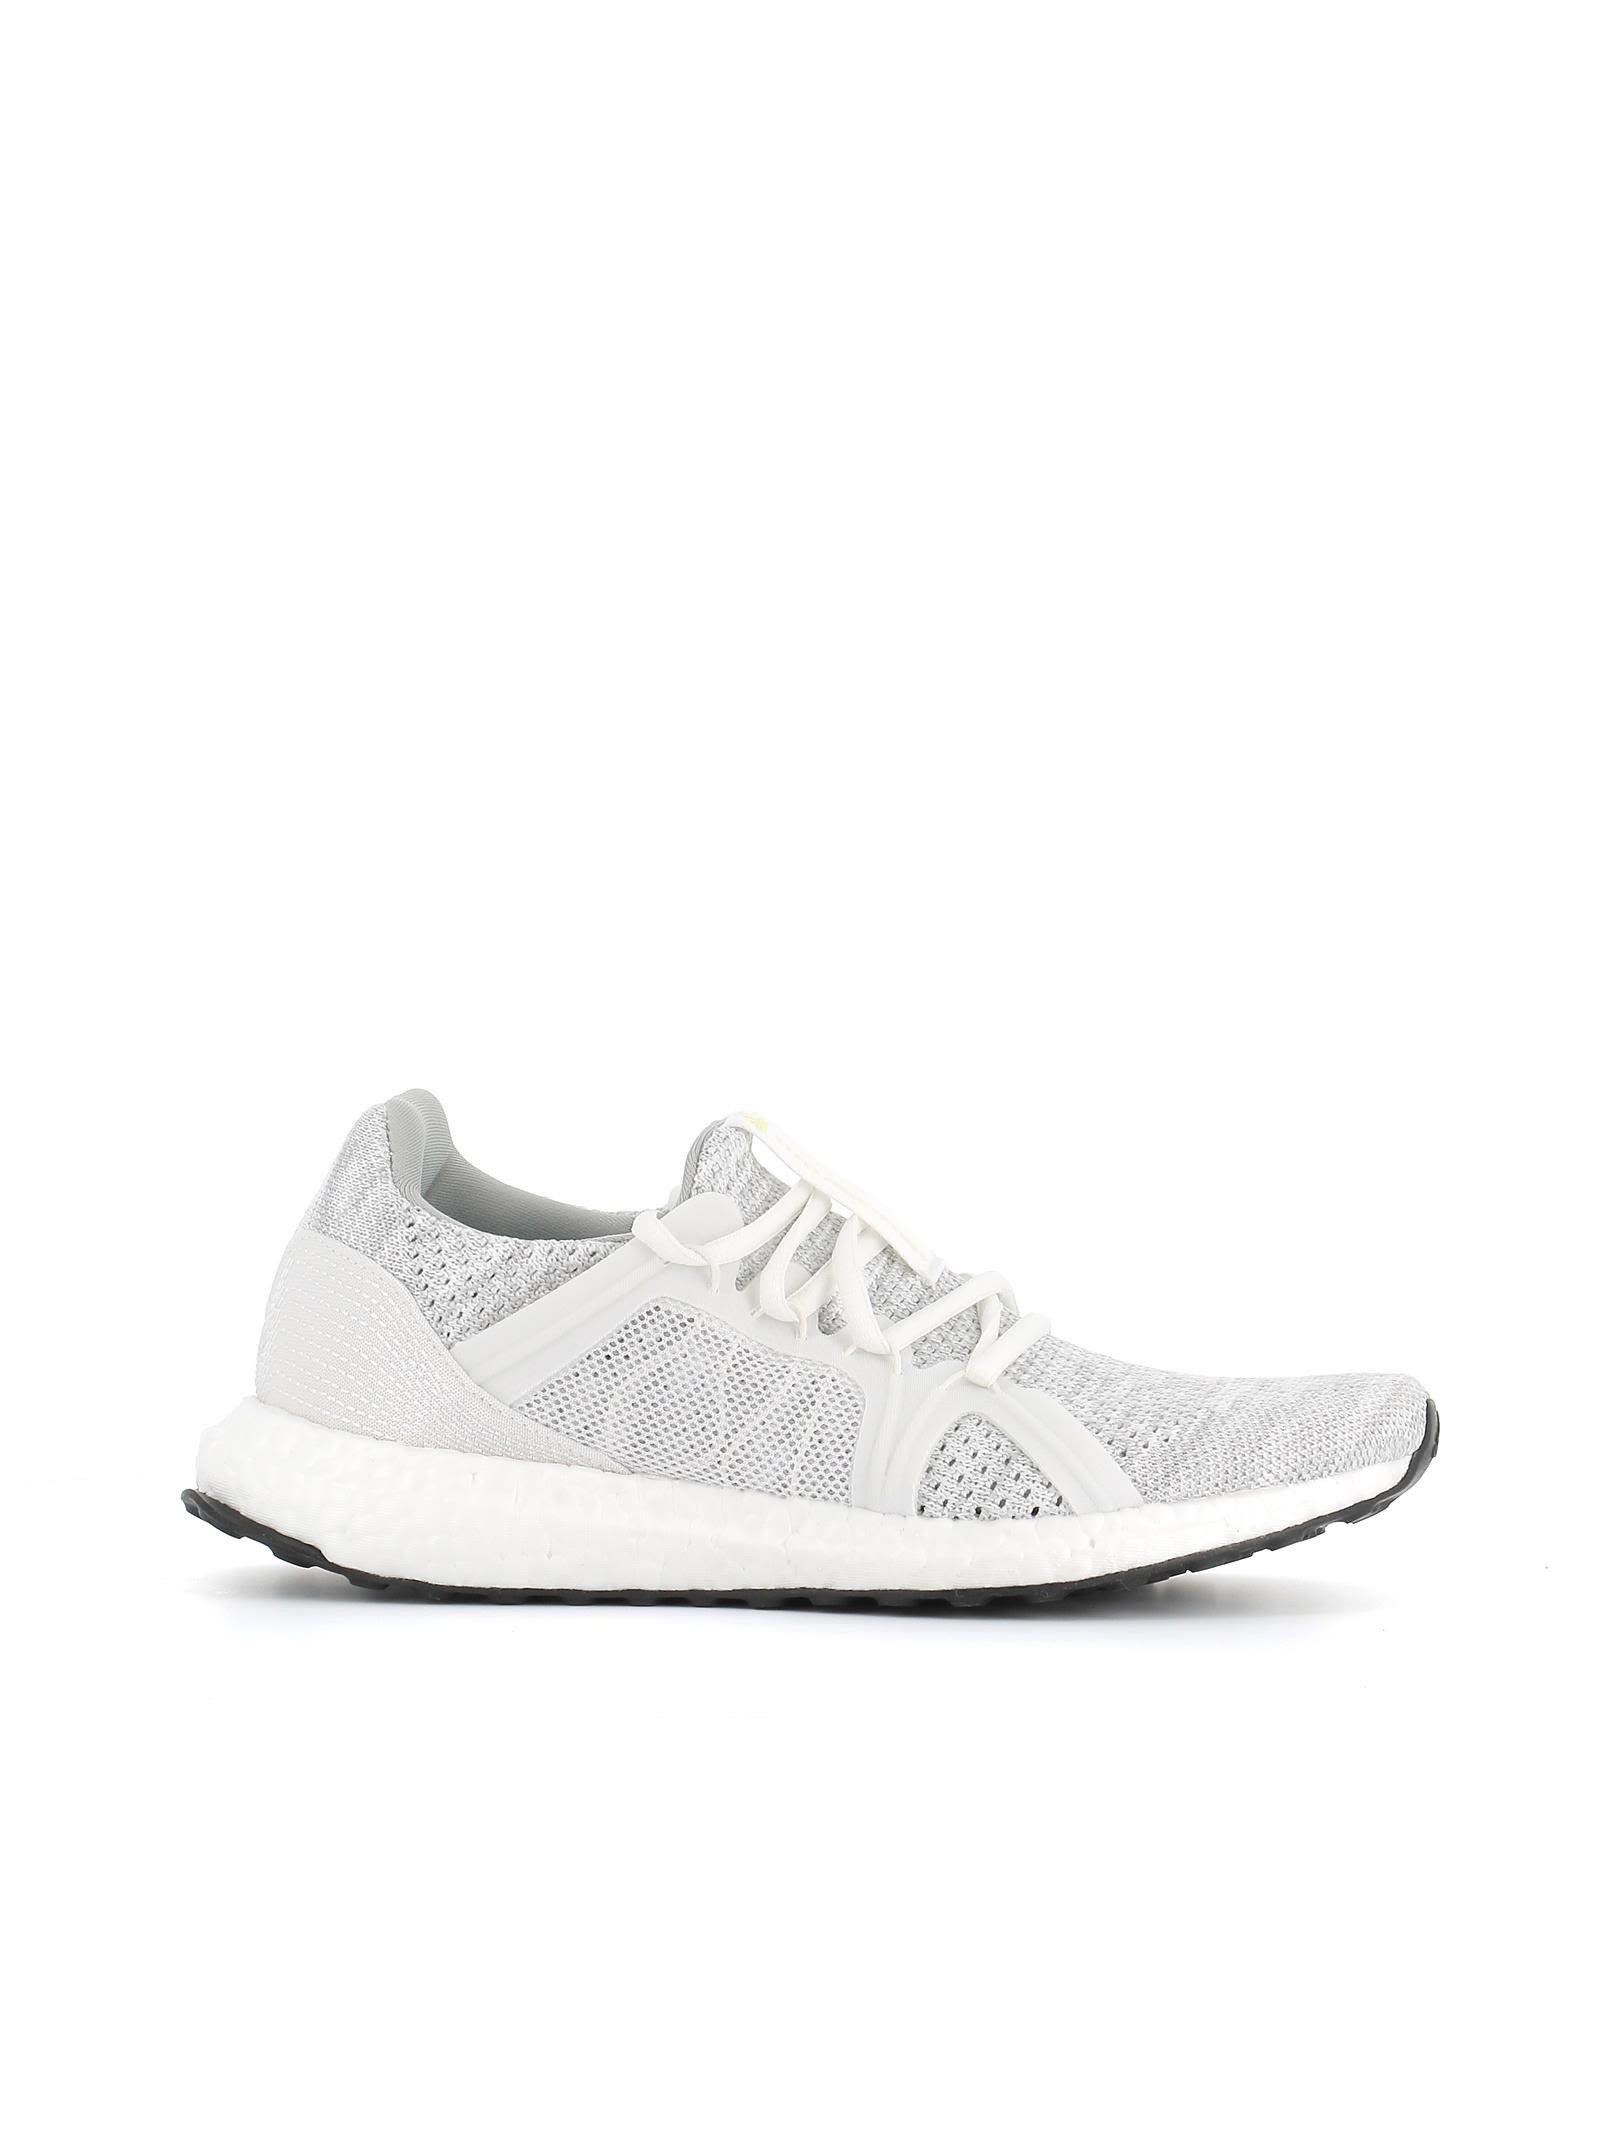 d1376589a667b Adidas by Stella McCartney White Synthetic